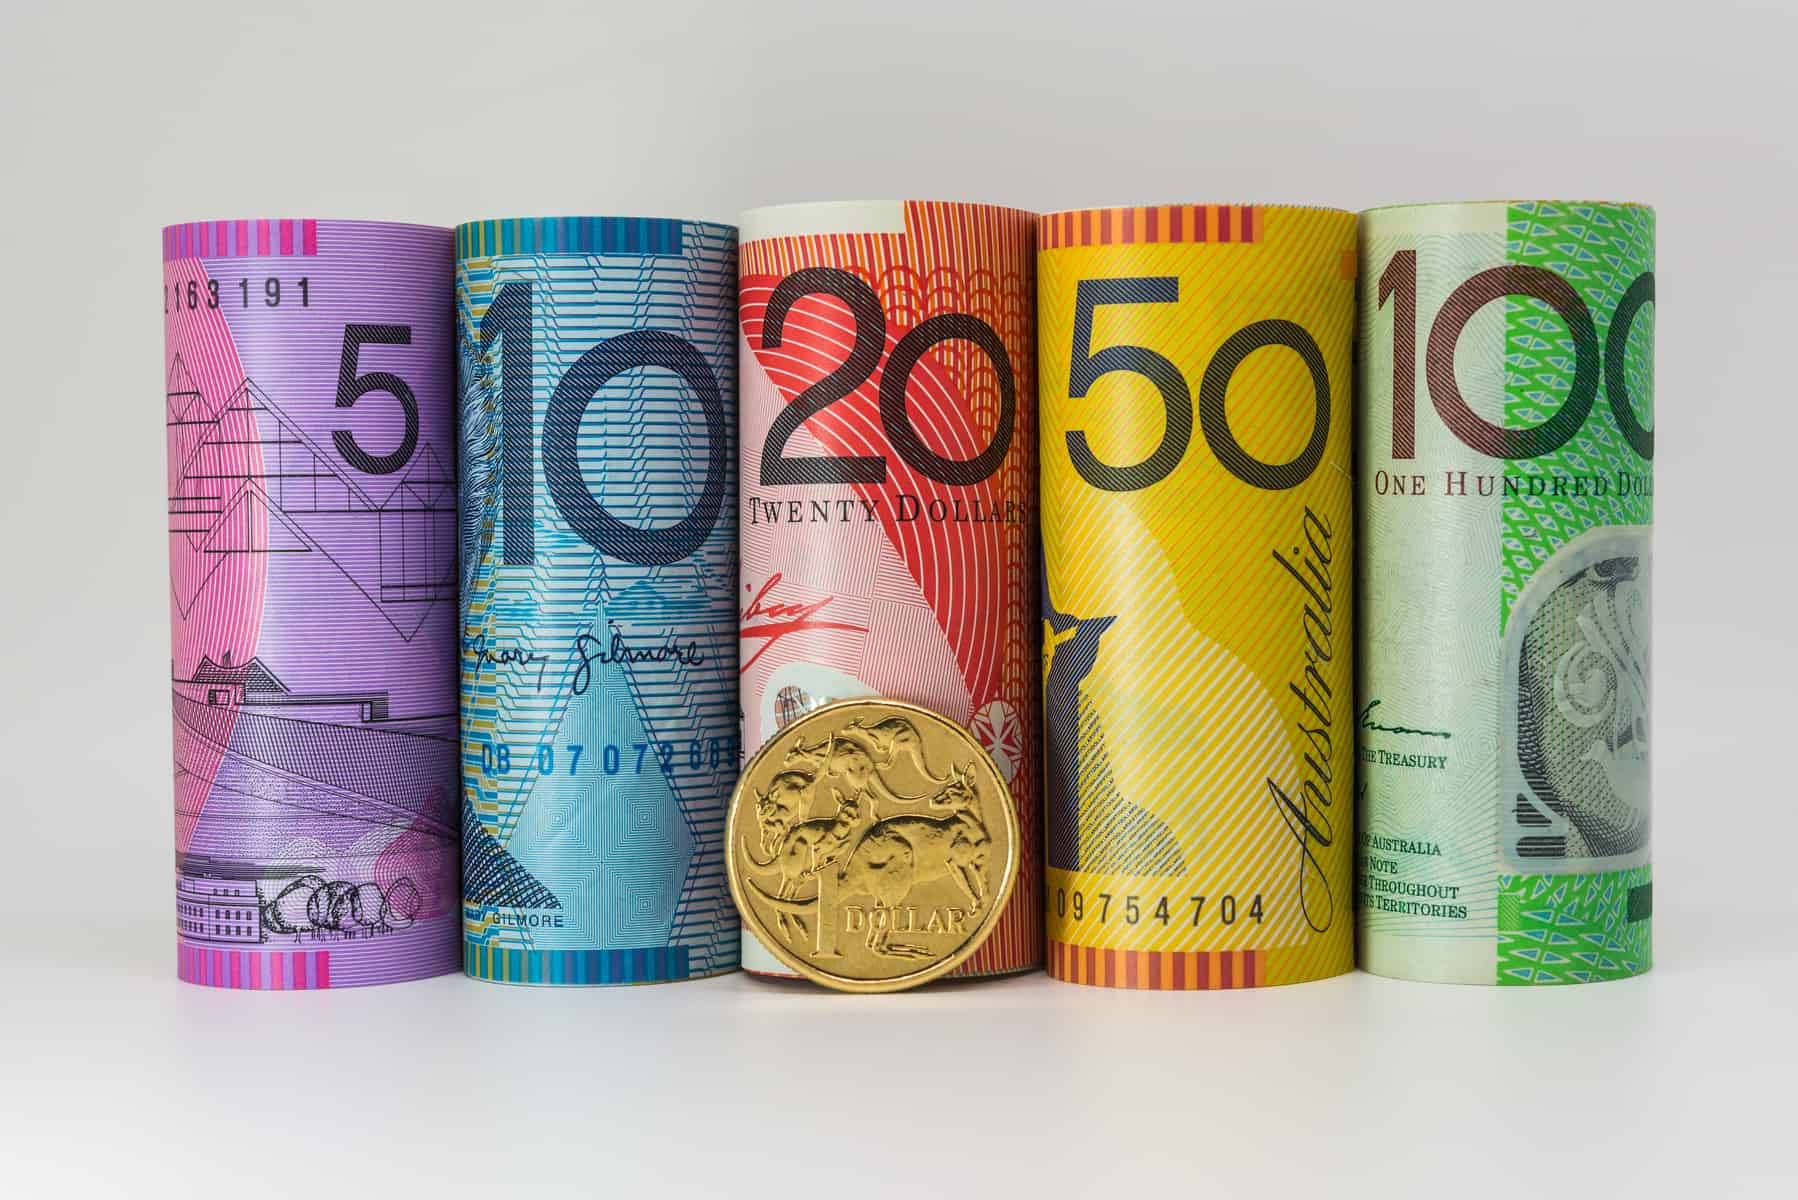 Rolls of Australian paper currency and a 1 Australian Dollar coin